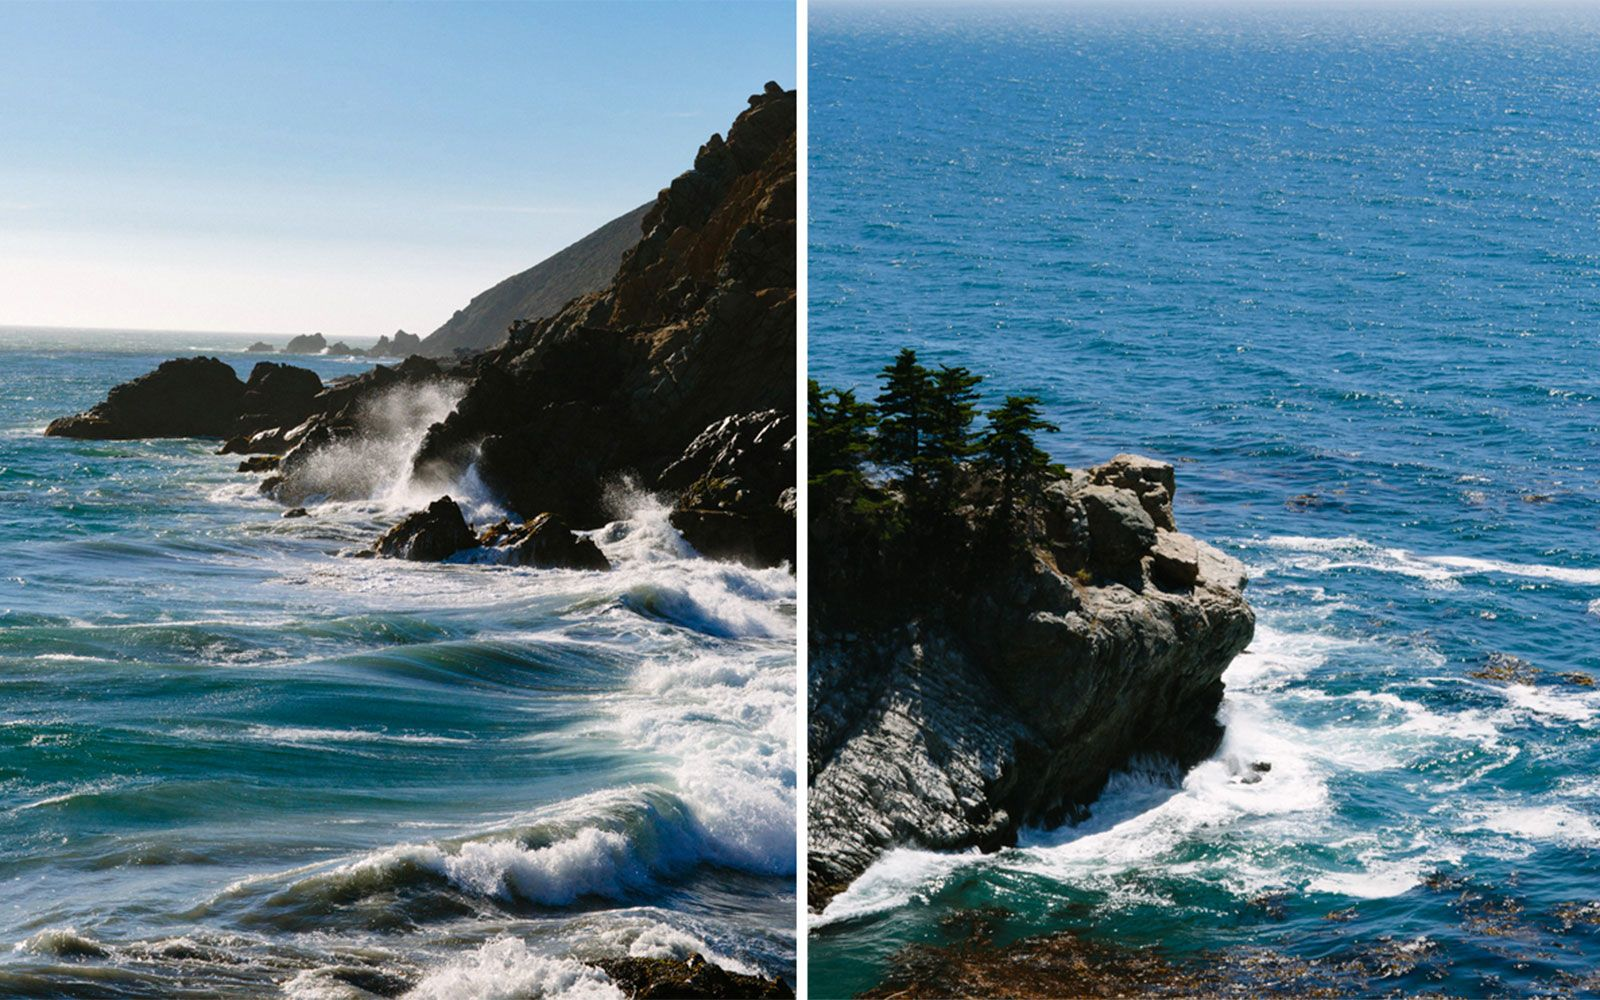 As you drive along Highway 1, split off onto Sycamore Canyon Road, seduced by the sights and smell of Pfeiffer Beach. The water flows between large rock formations barely removed from a beach worth strolling.